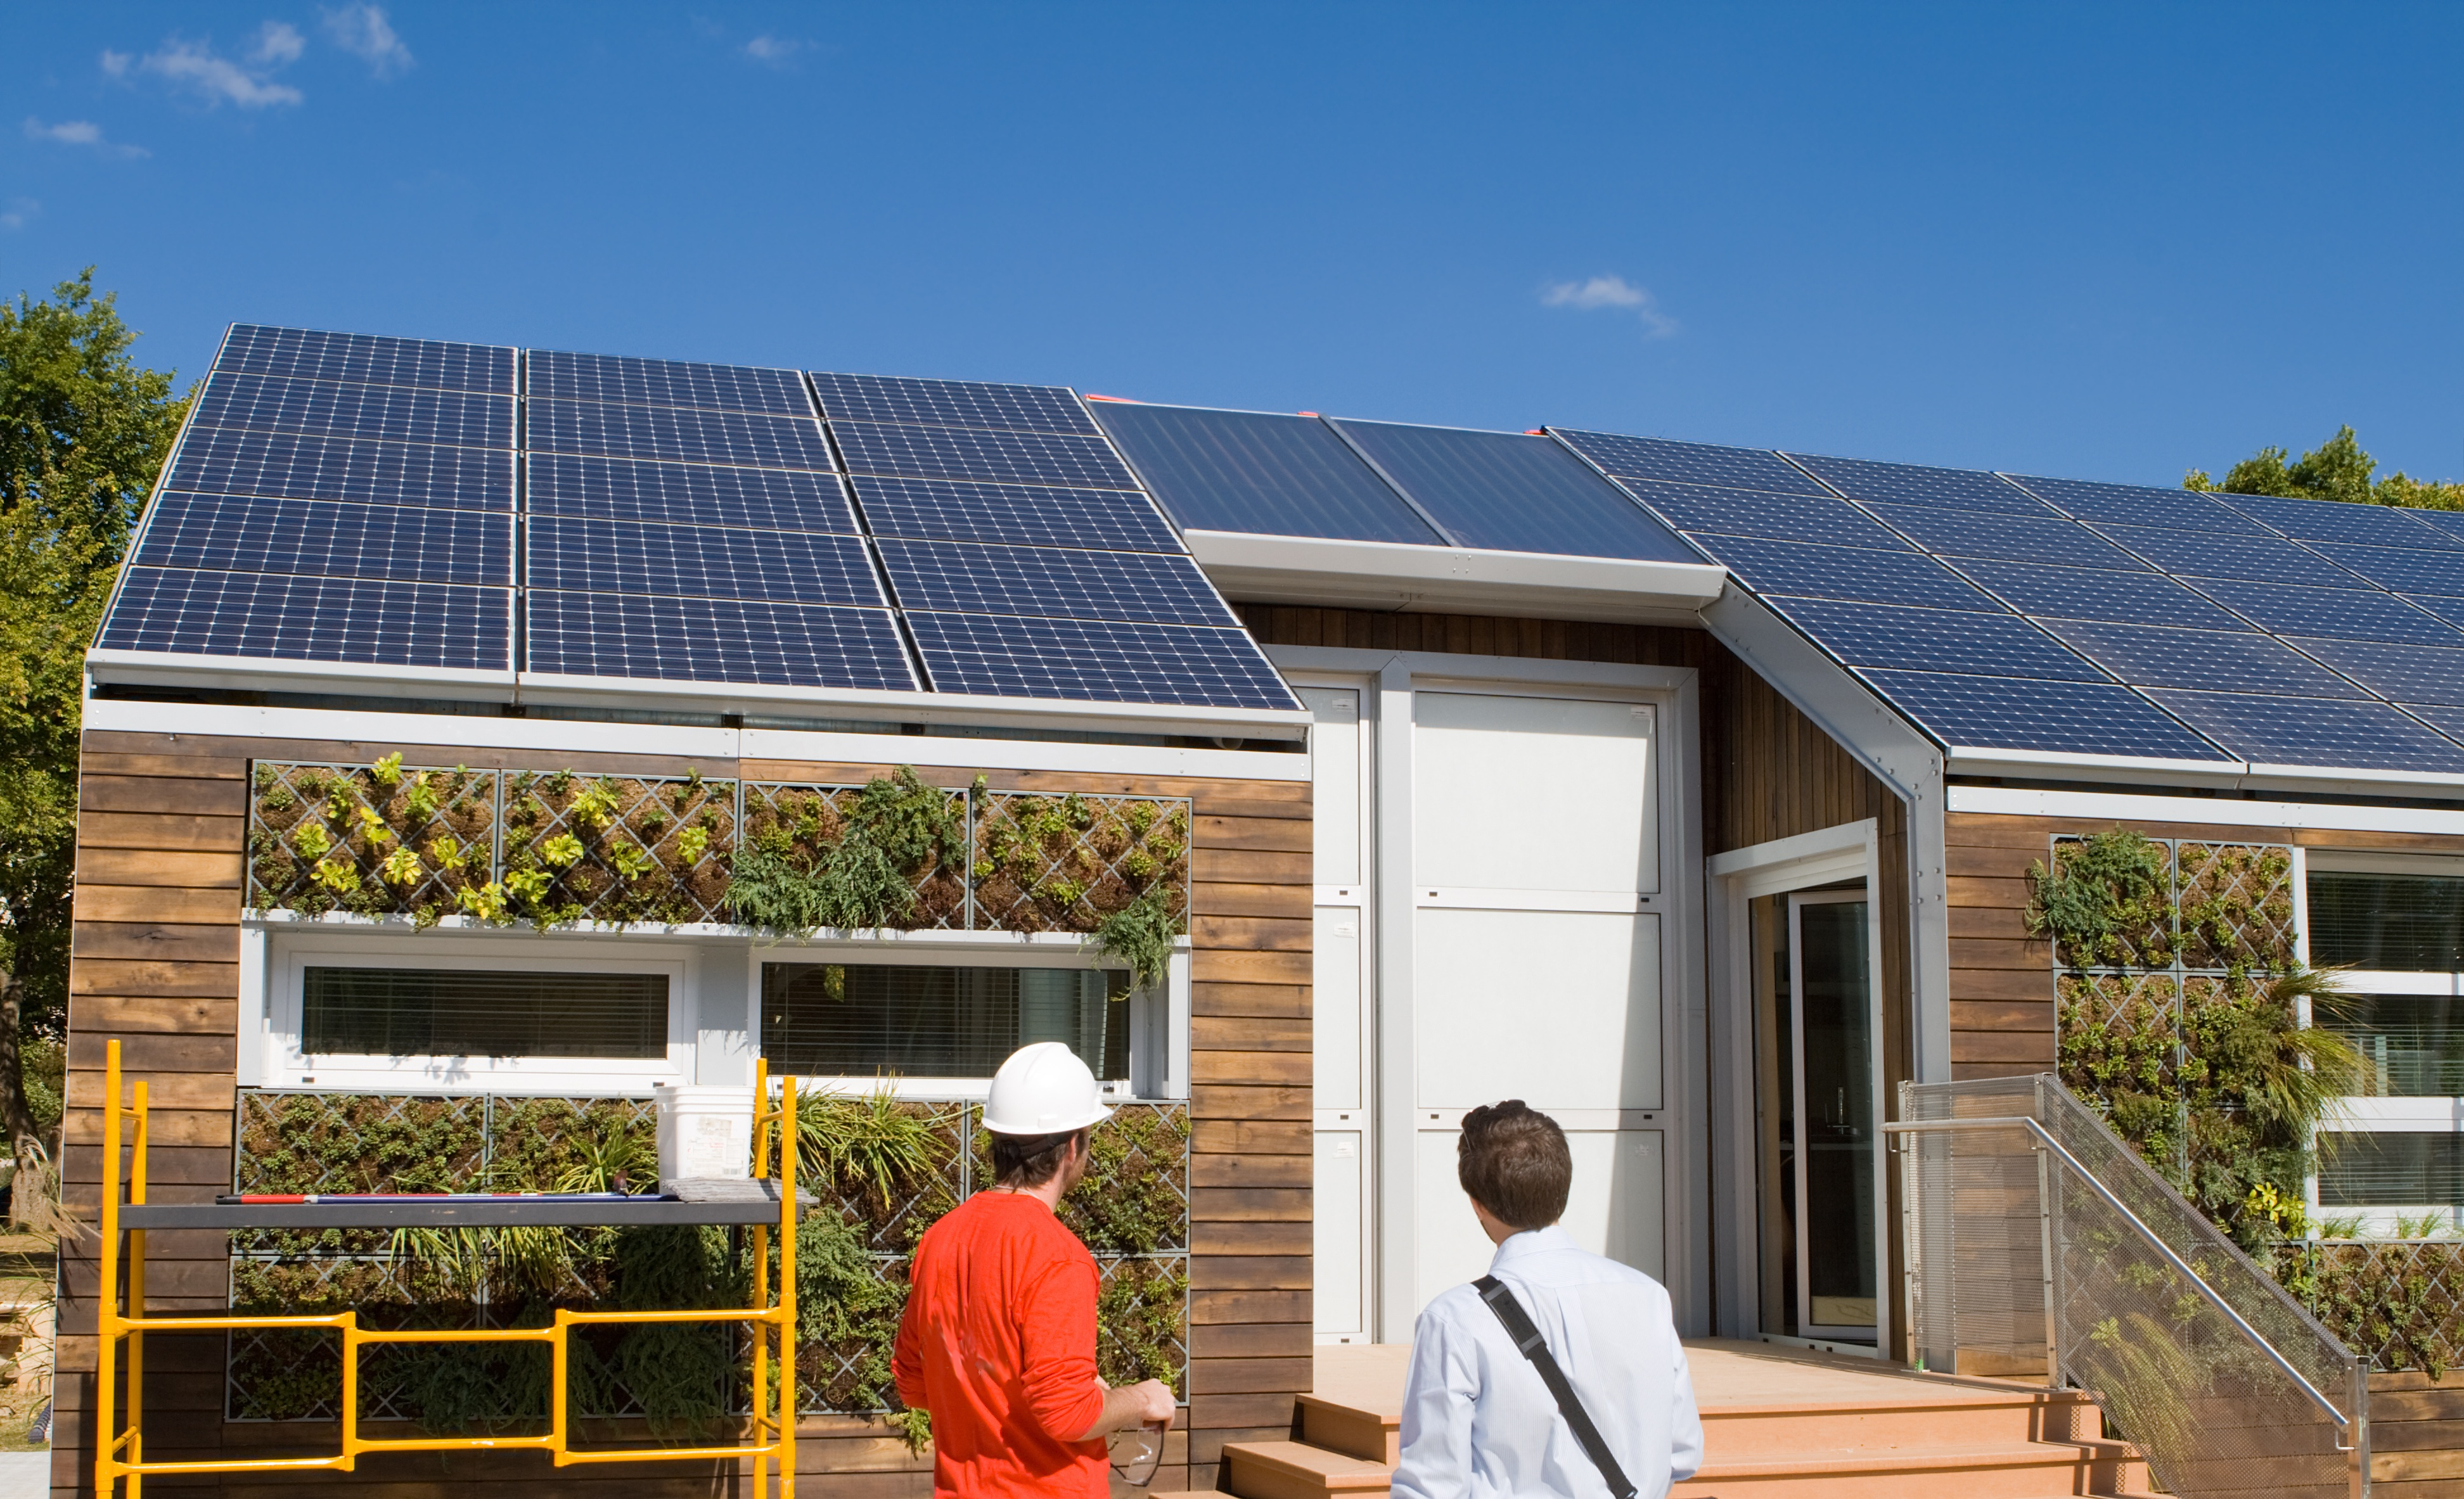 The 8 key benefits of solar for new homes in New Zealand